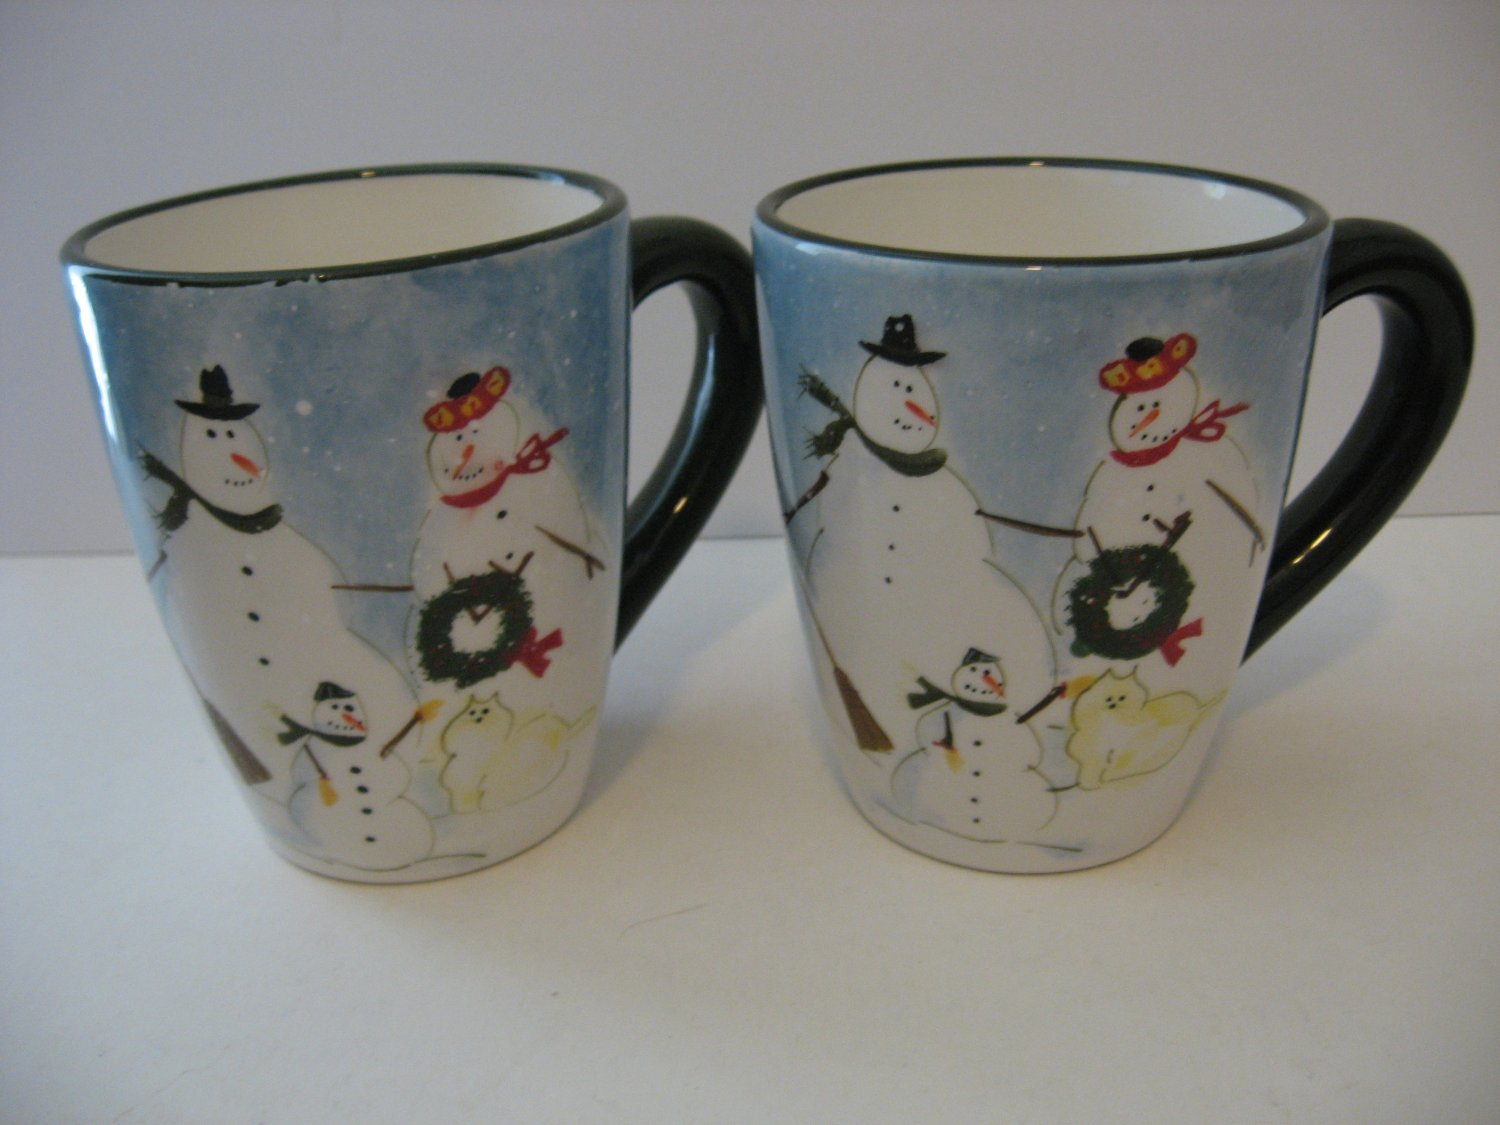 Snow Family Design - Large Coffee mugs - Set of 2